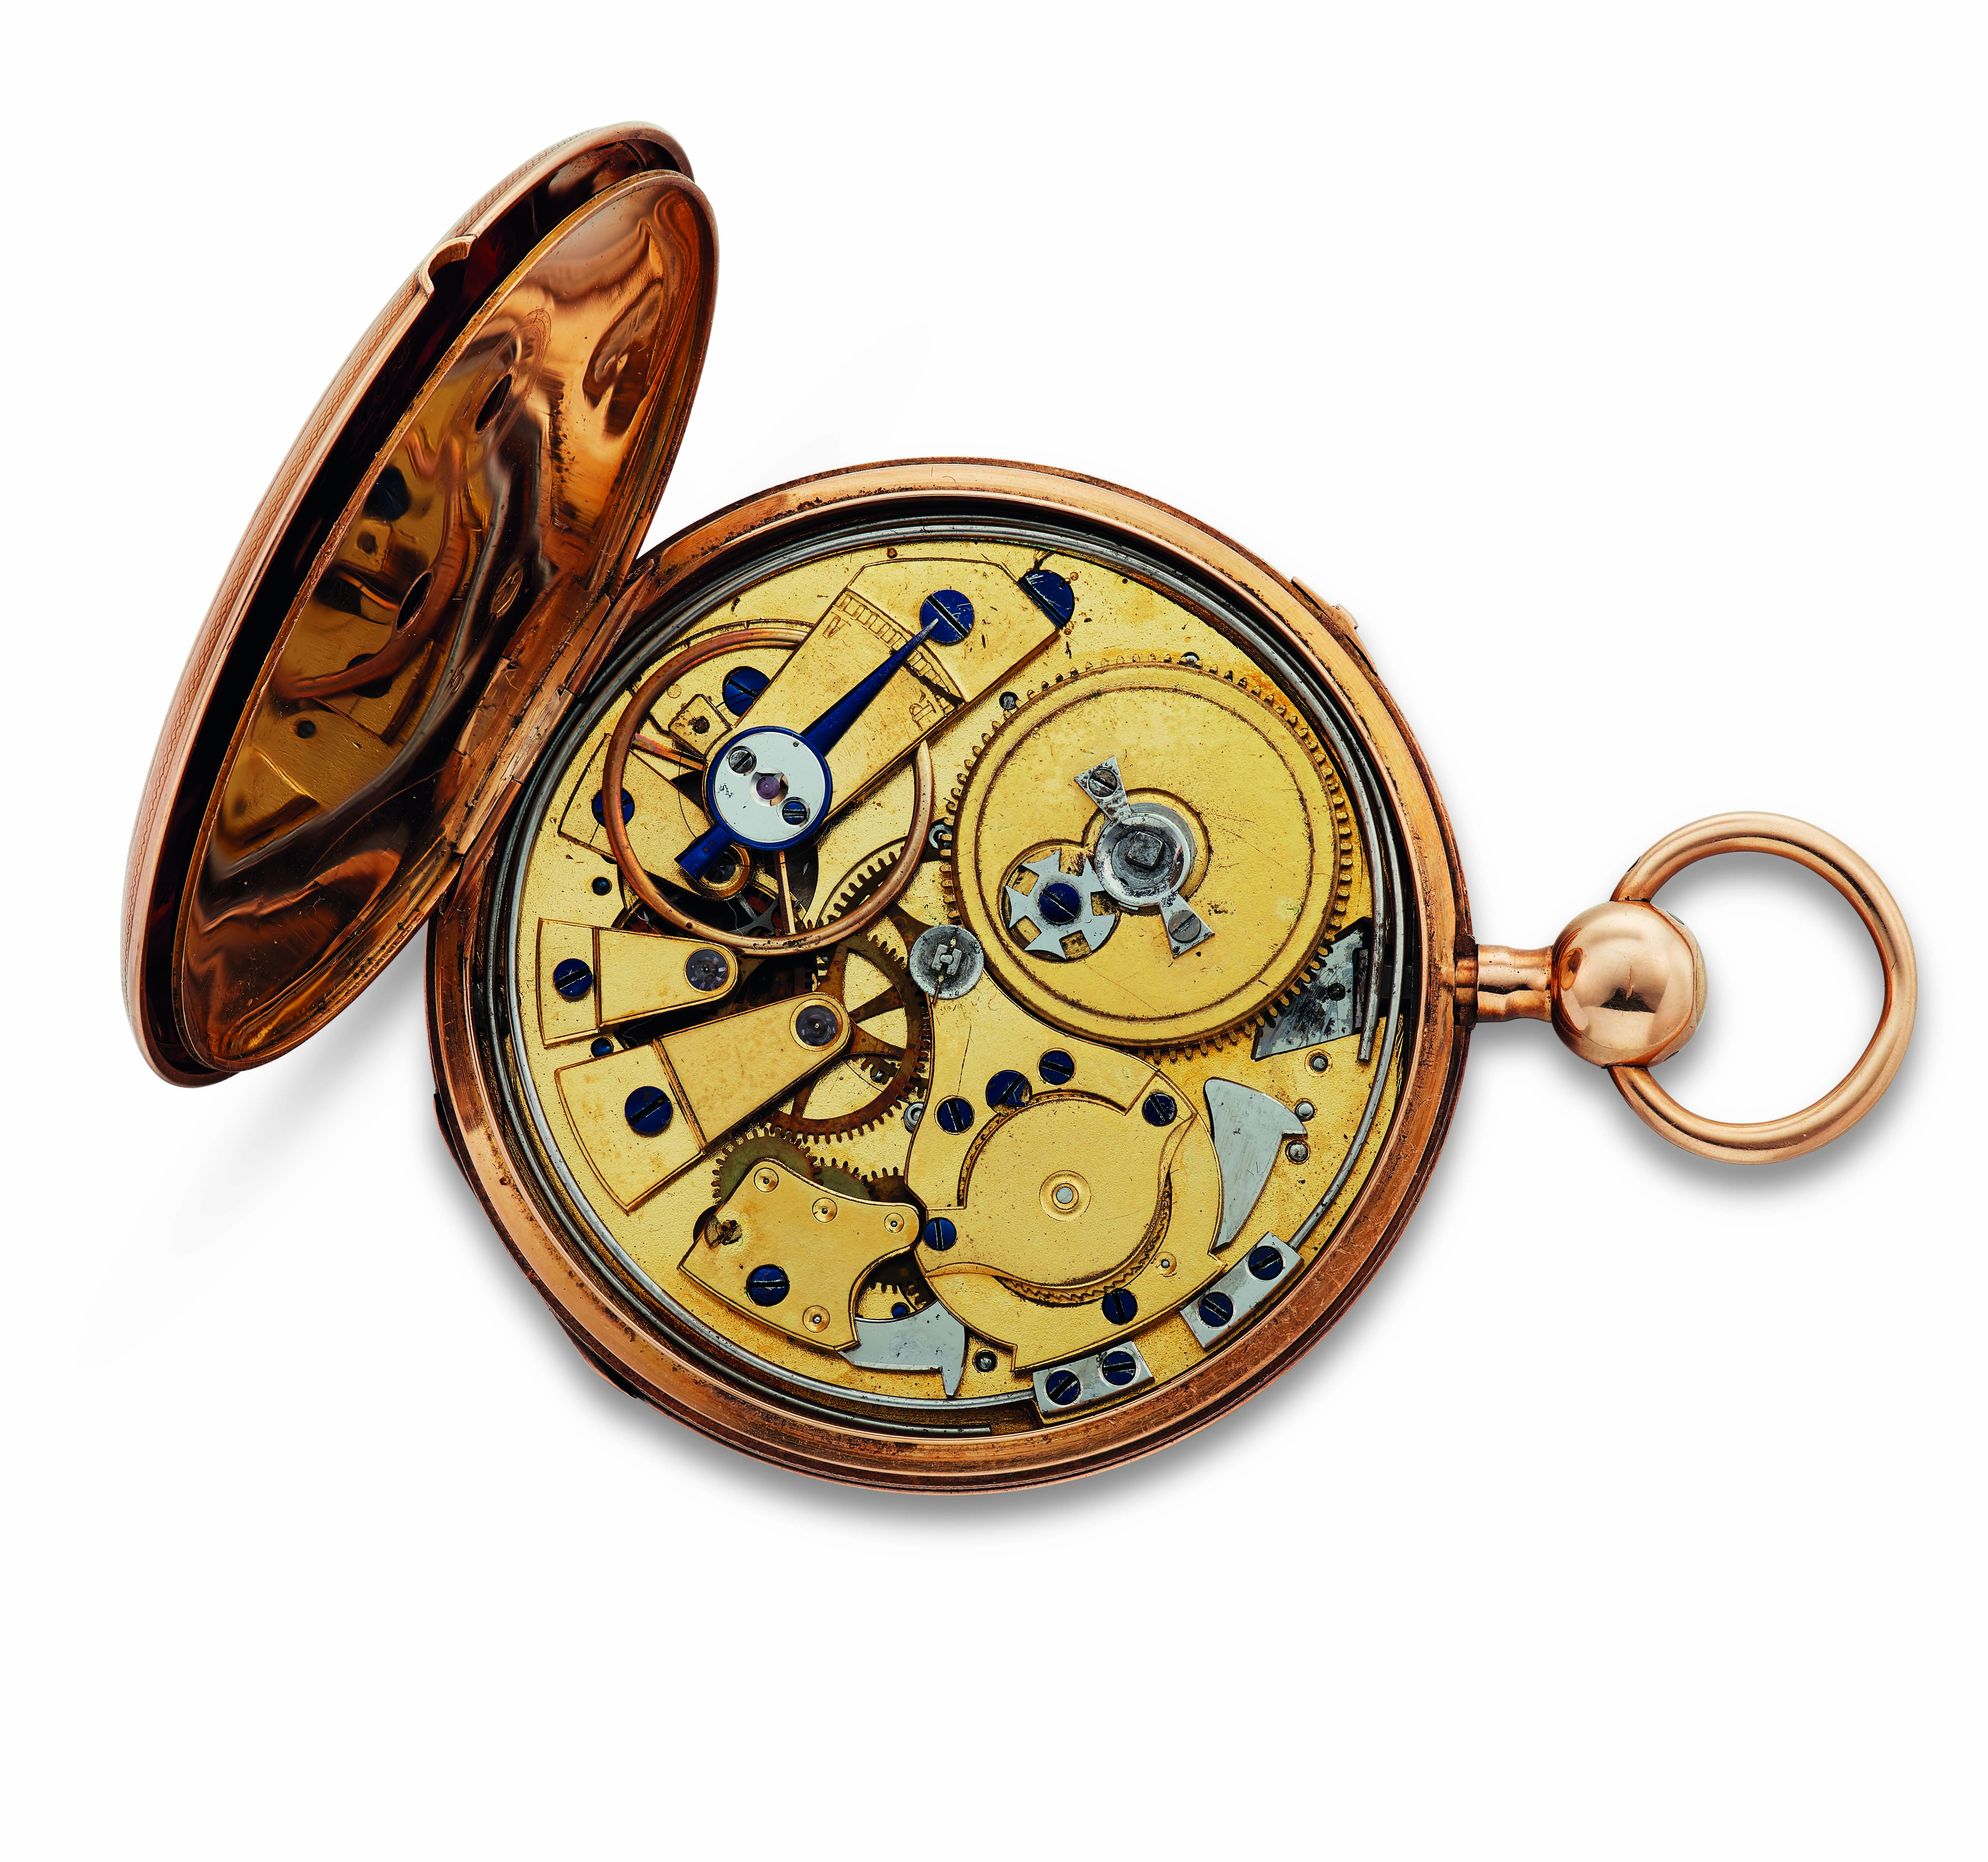 """POE, Edgar Allan (1809-1849) – French. An 18k gold key-wound quarter repeating open-face pocket watch with metal guilloche dial Roman hour markers and spade hands. The cuvet (dust-cover) is engraved, """"Echappement A Cylindre En – Aiguilley – Edgar A. Poe – Pierre Huit Trous En Rubis."""" The inside case-back cover is engraved with the case number 21705. The case is 51mm."""